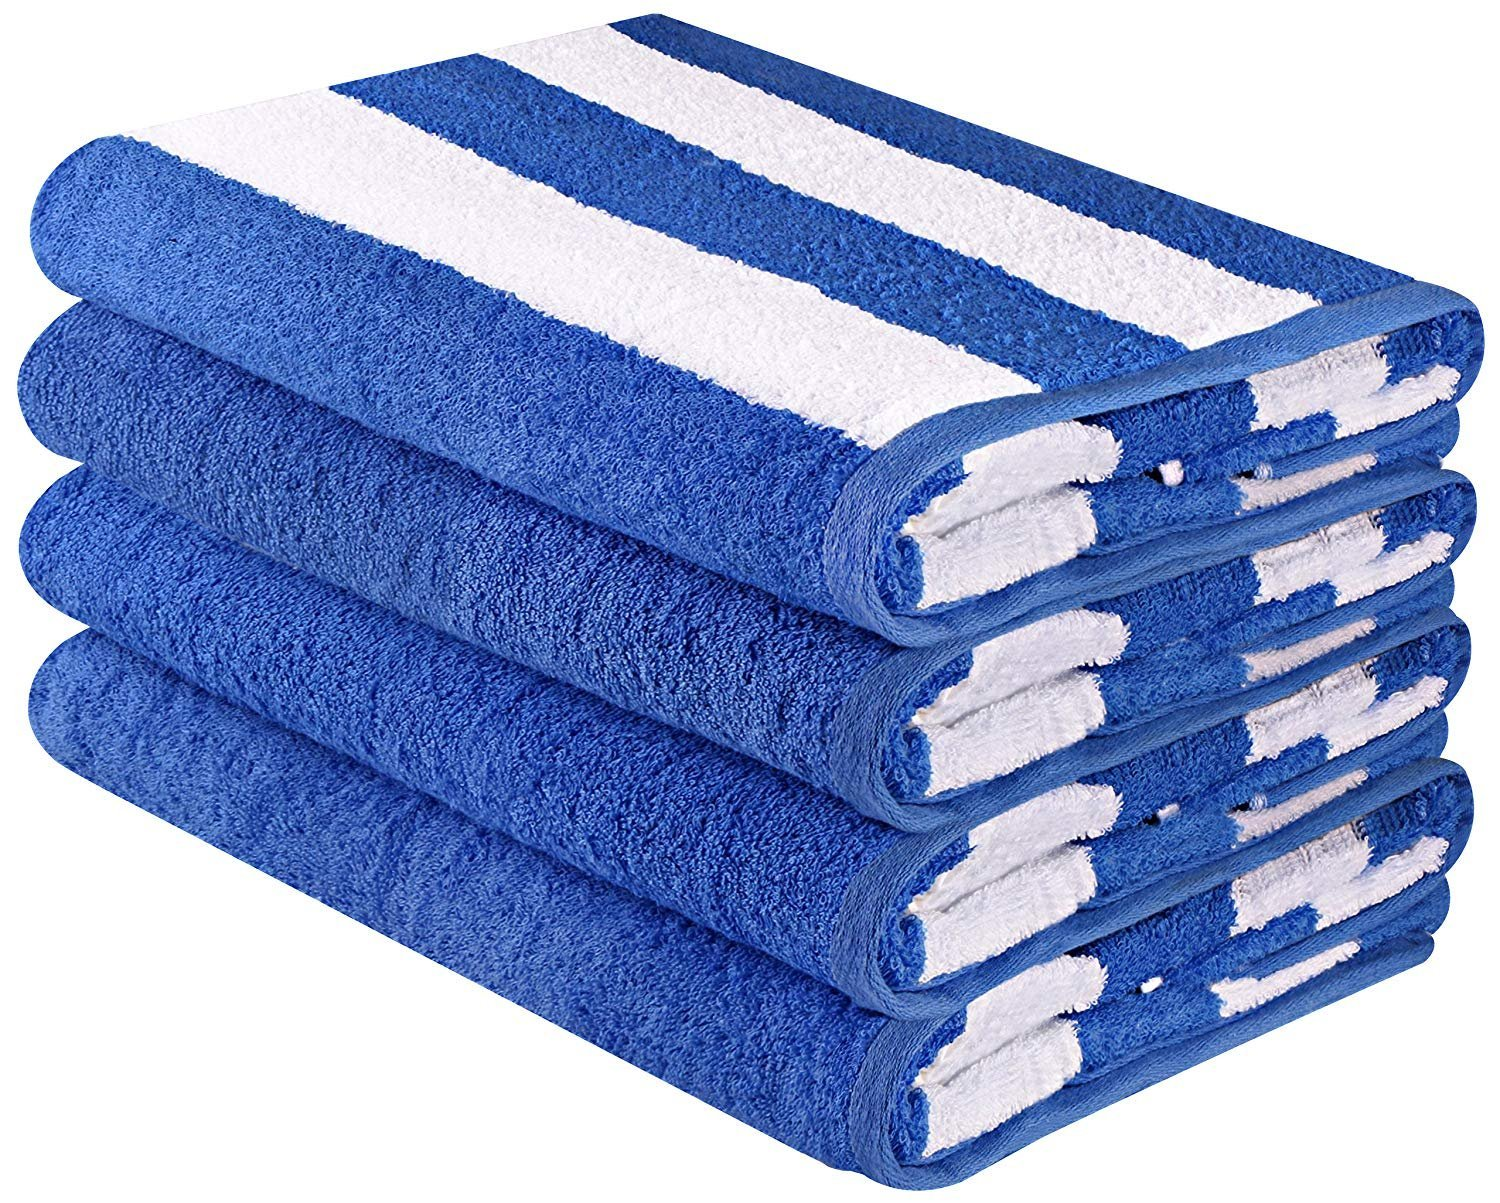 Large Beach Towel, Pool Towel, in Cabana Stripe - (Blue, 4 pack, 30x60 inches) - Cotton - by Utopia Towel Utopia Towels UT0073